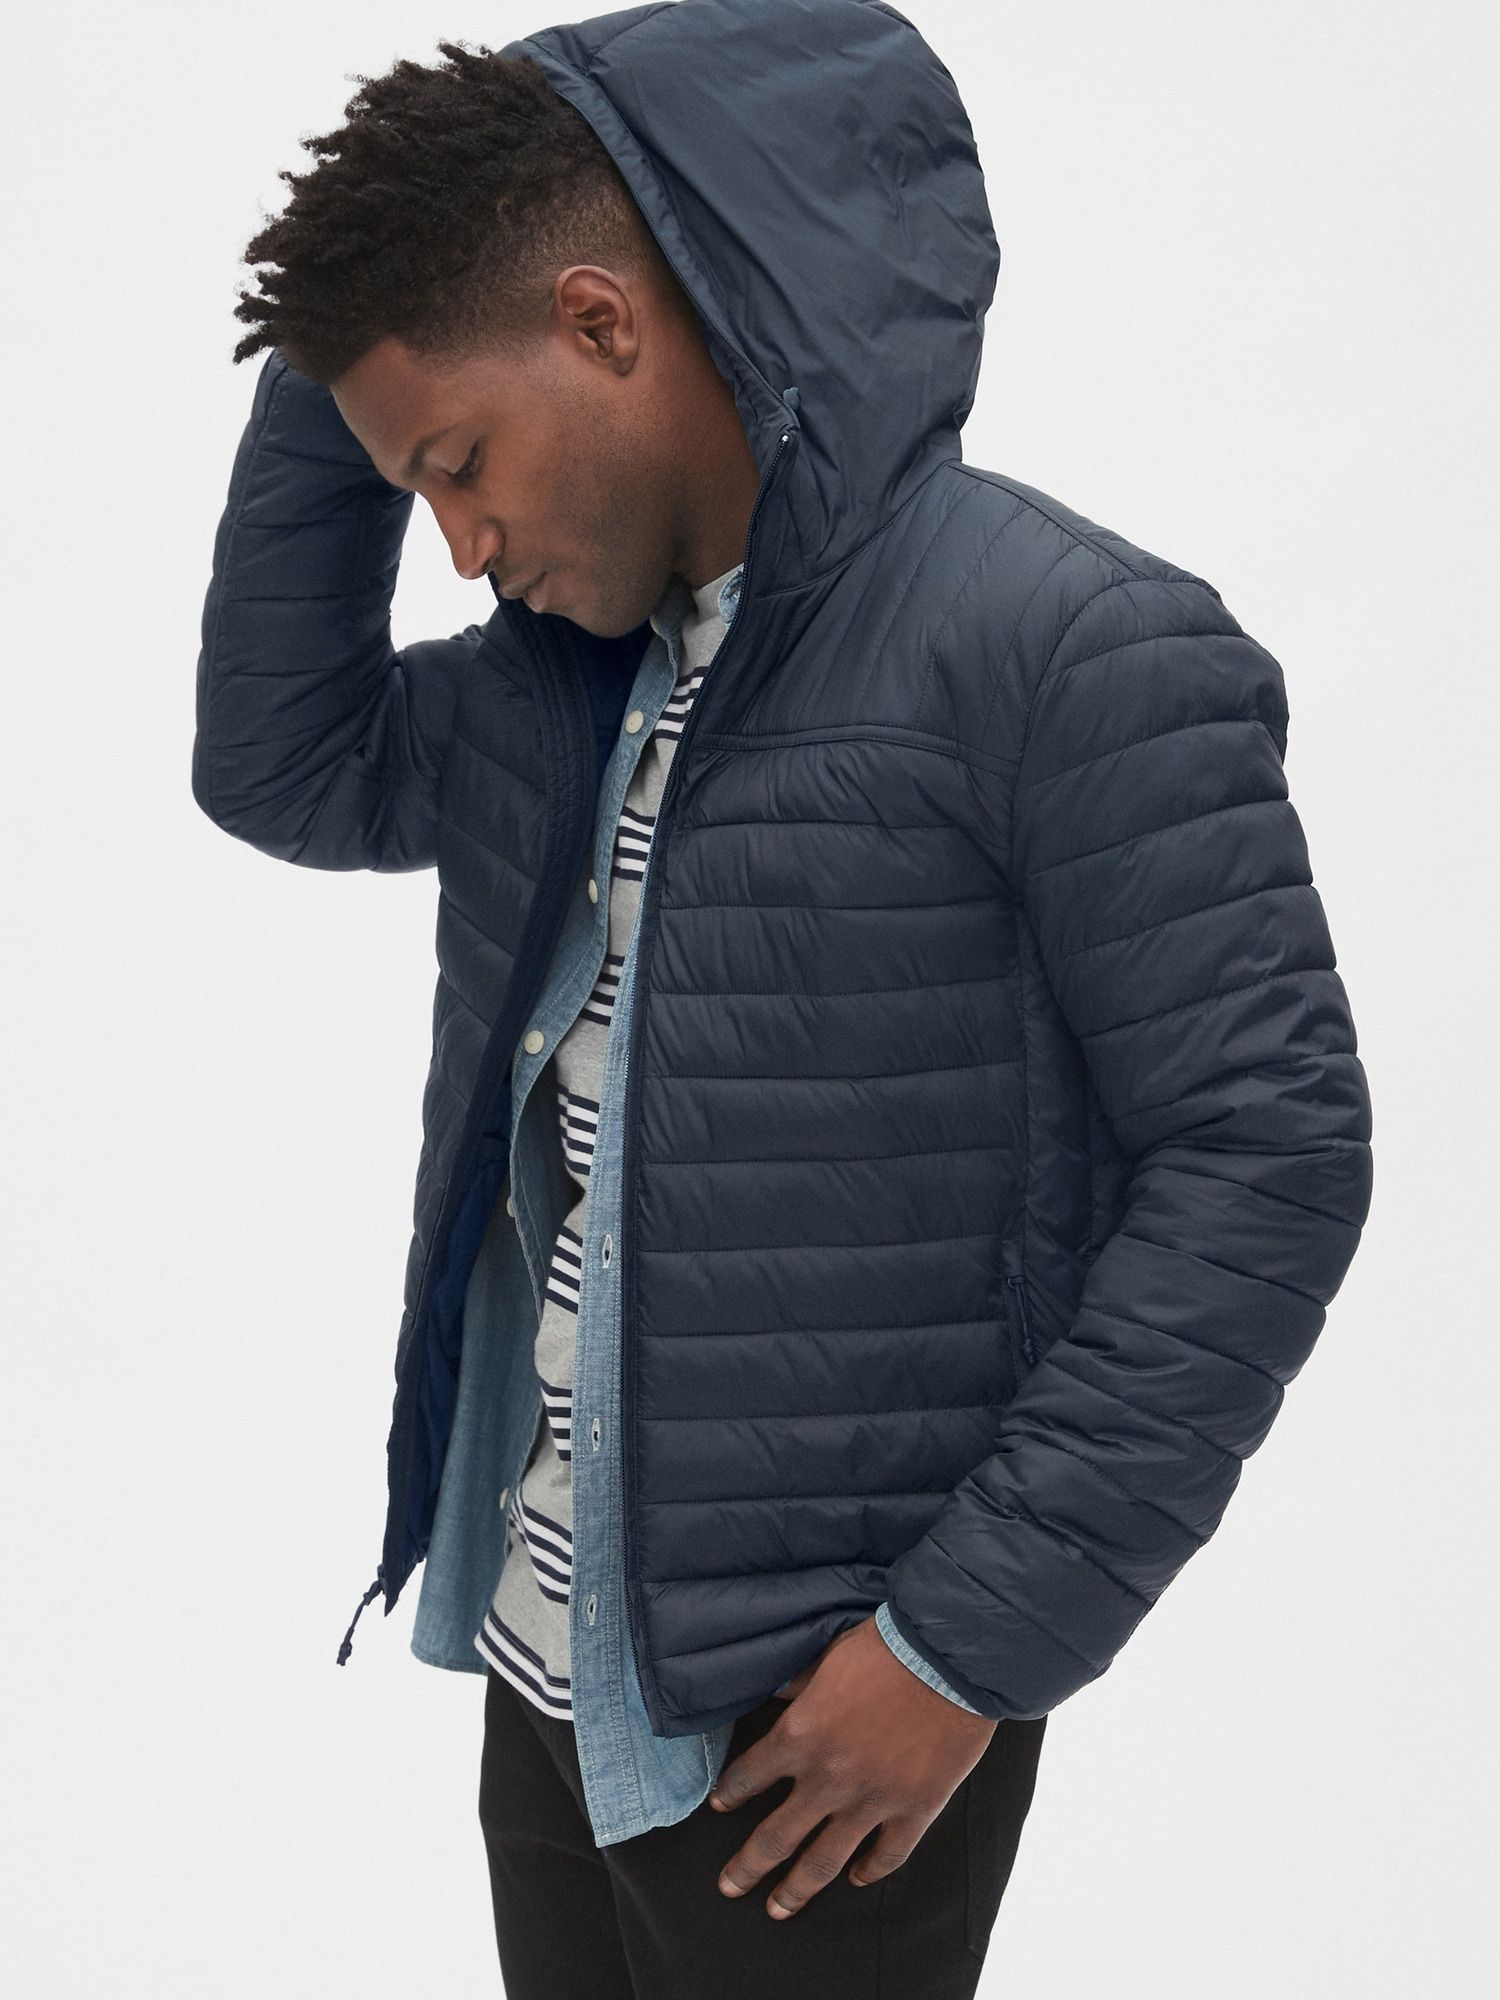 Gap Coldcontrol Lightweight Hooded Puffer Jacket New Classic Navy Blue In 2021 Mens Outfits Clothes Jackets [ 2000 x 1500 Pixel ]